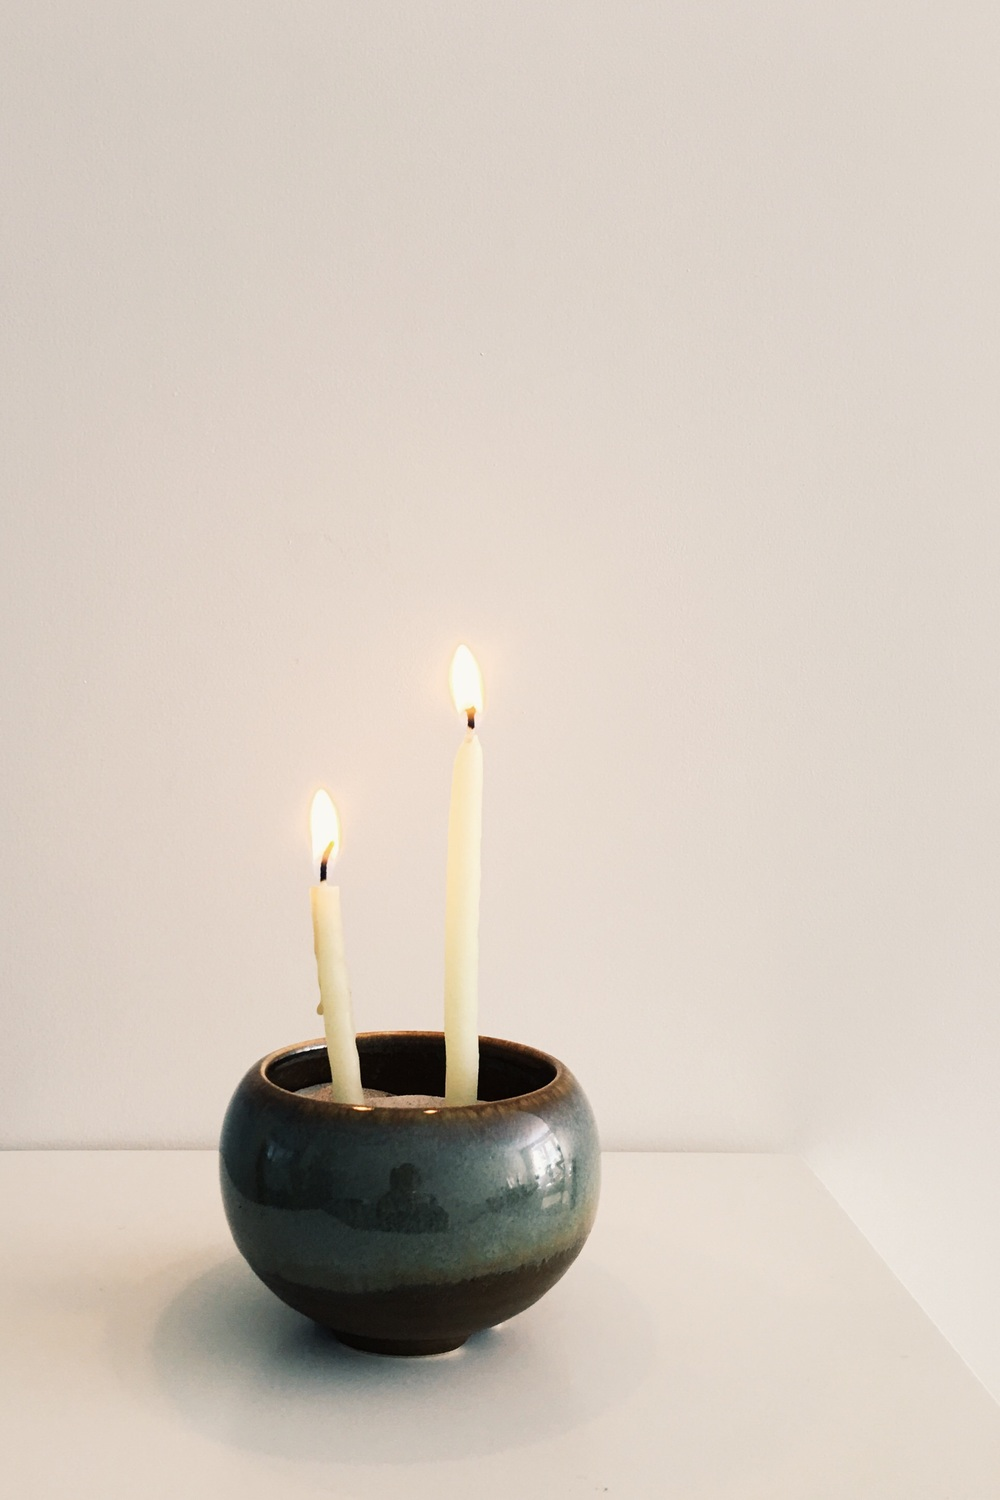 Incense bowl shoyeido, burninglights prayer candle